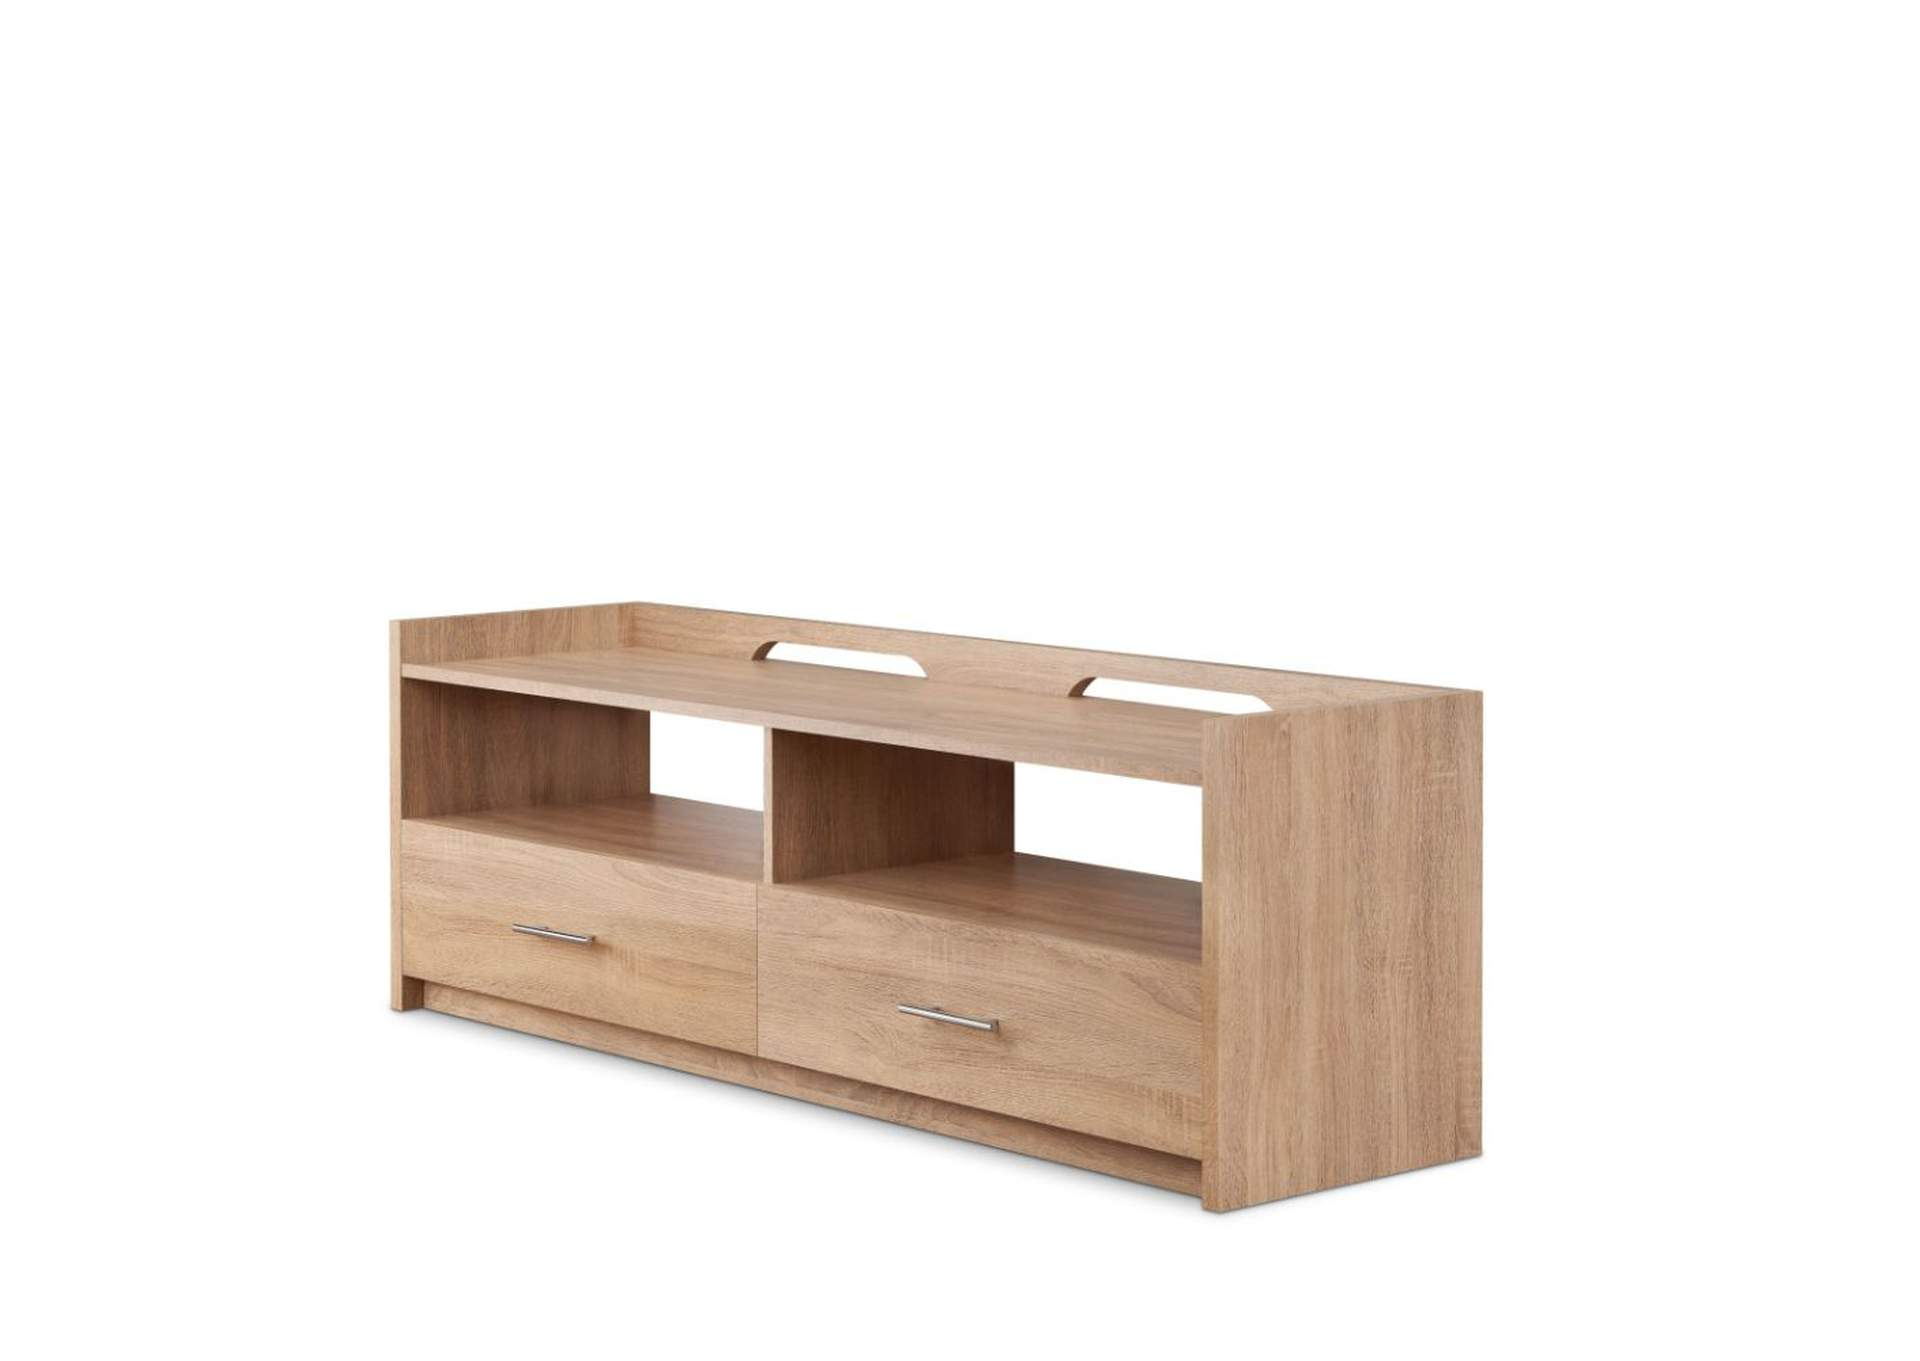 Kilko Rustic Natural TV Stand,Acme